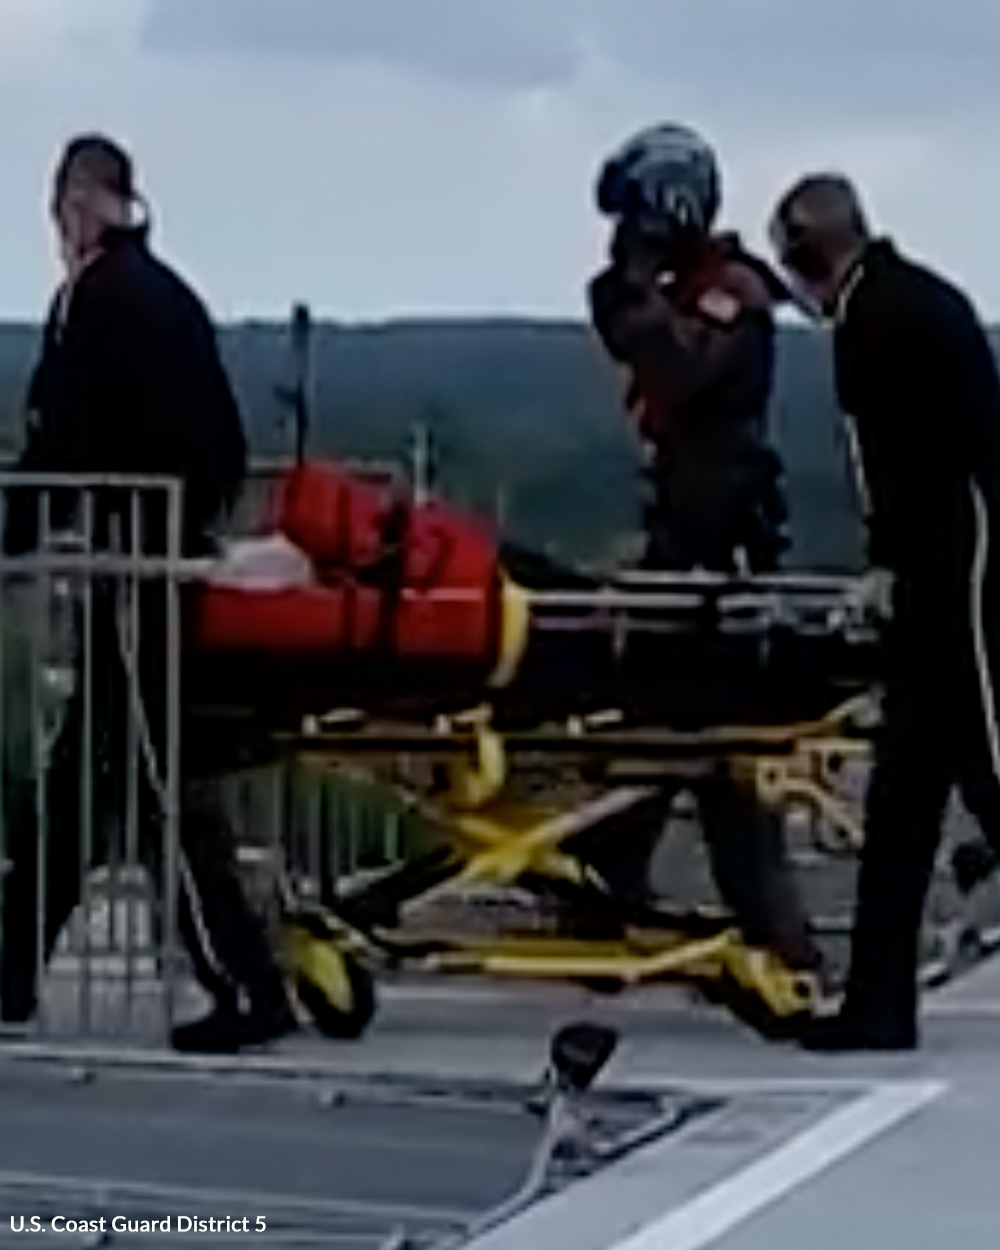 This patient has a chance of survival thanks to the Coast Guard.